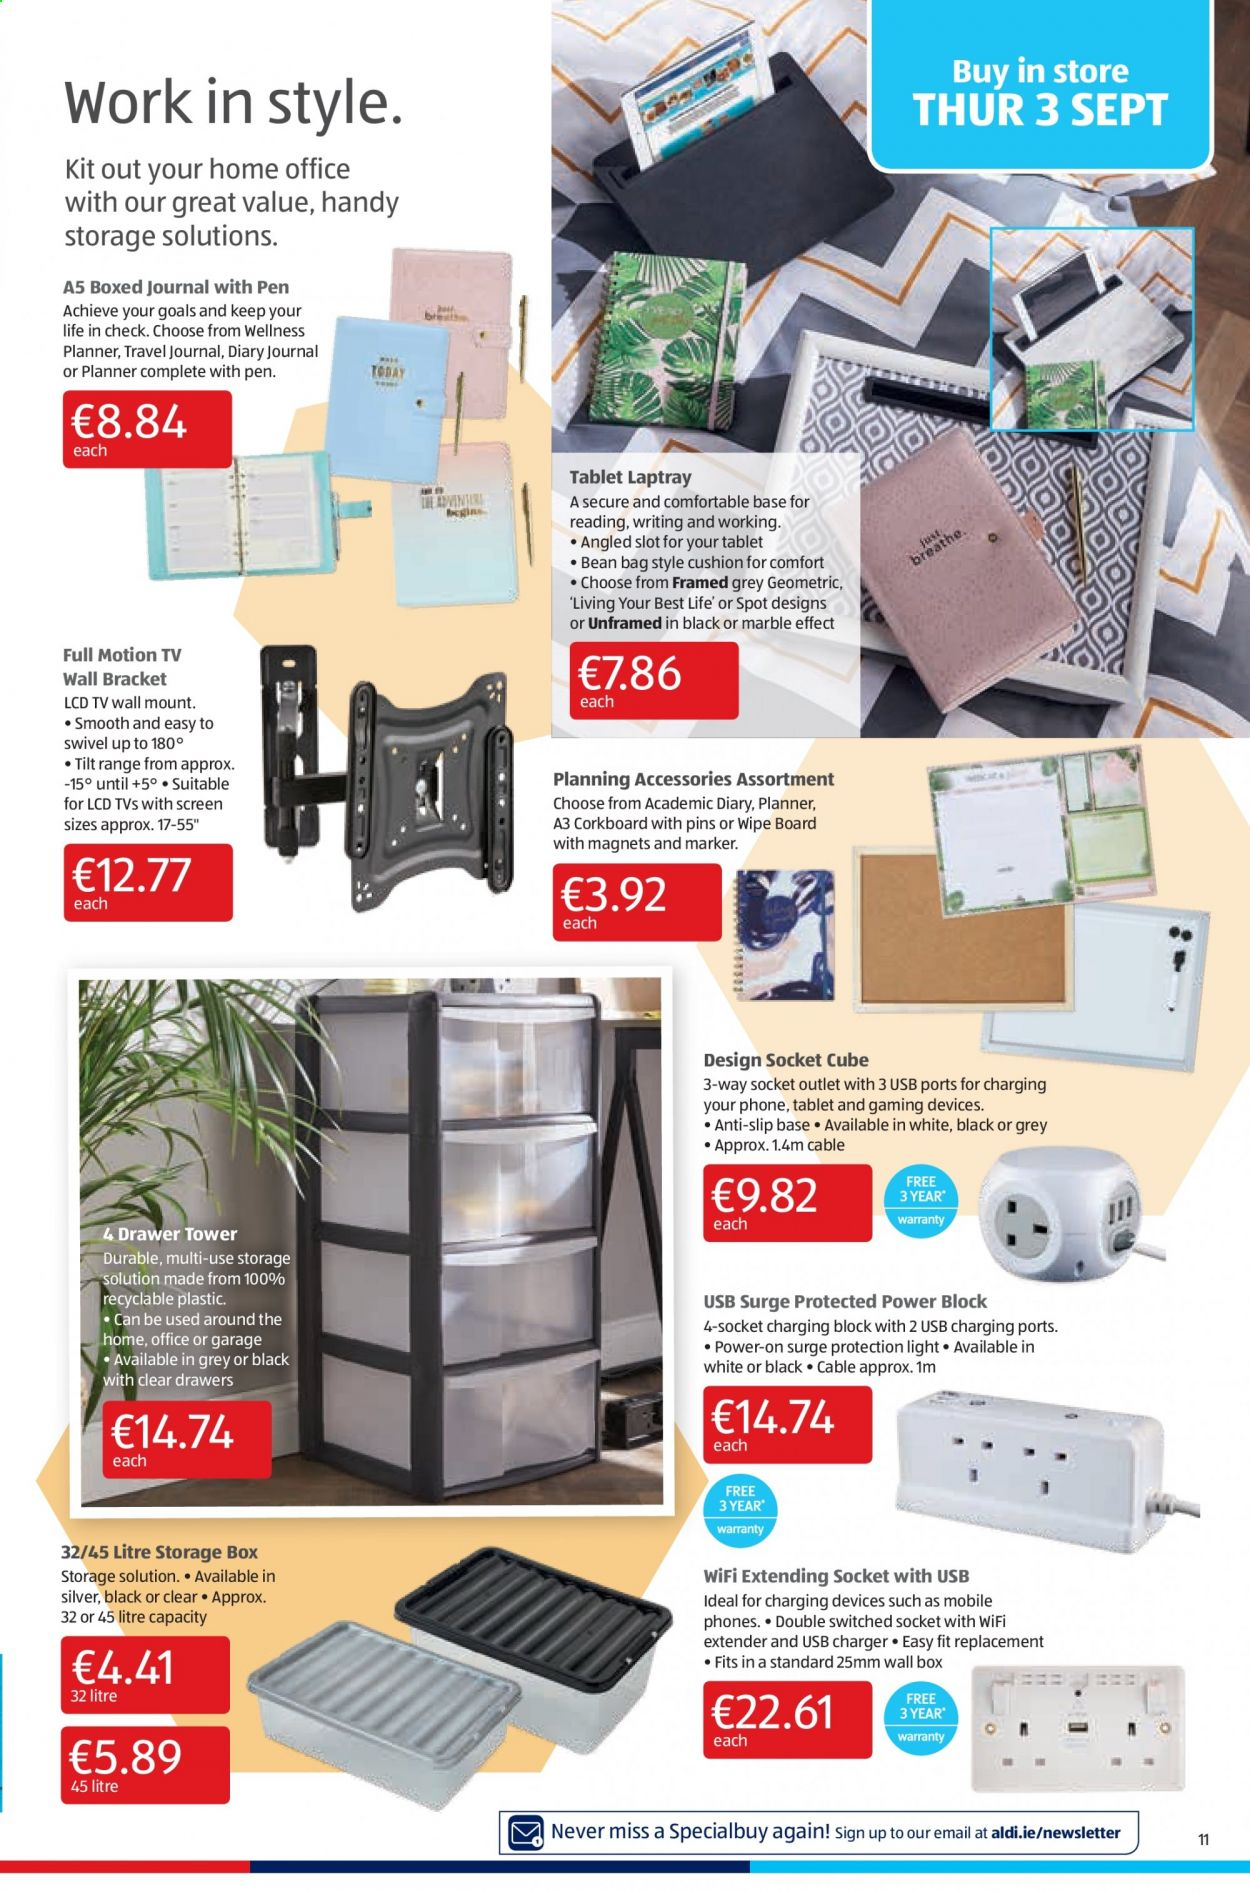 Aldi offer  - 3.9.2020 - 6.9.2020 - Sales products - accessories, bag, cushion, drawer, storage, surge, tablet, usb, wifi, charger, storage box, diary, pen, board, marker, cable, extender. Page 11.